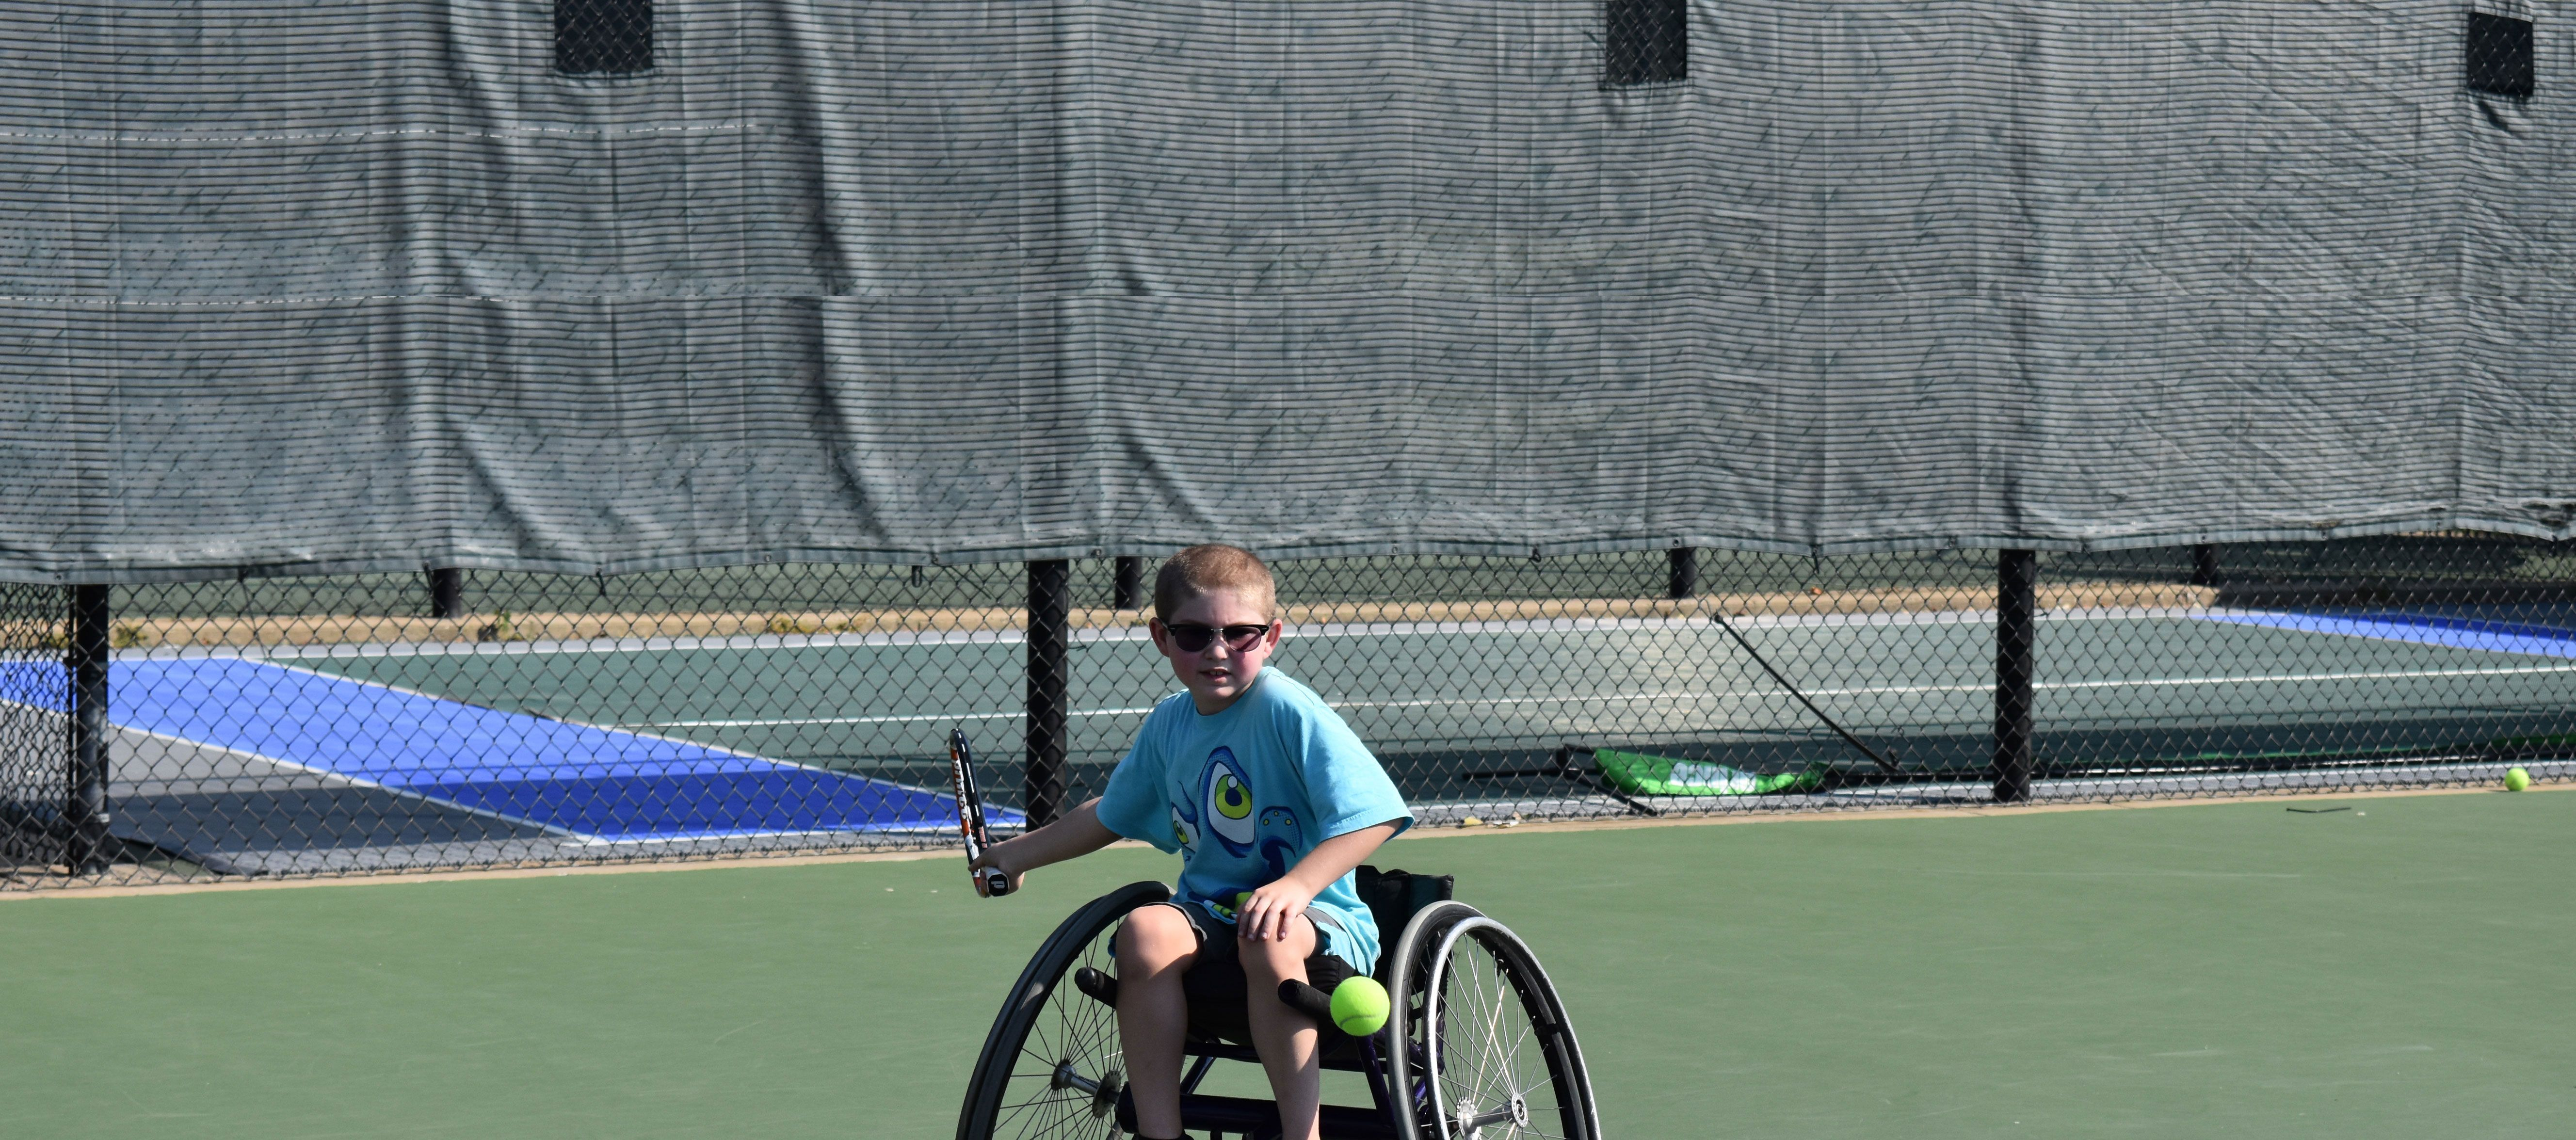 Young boy in wheelchair playing tennis outside